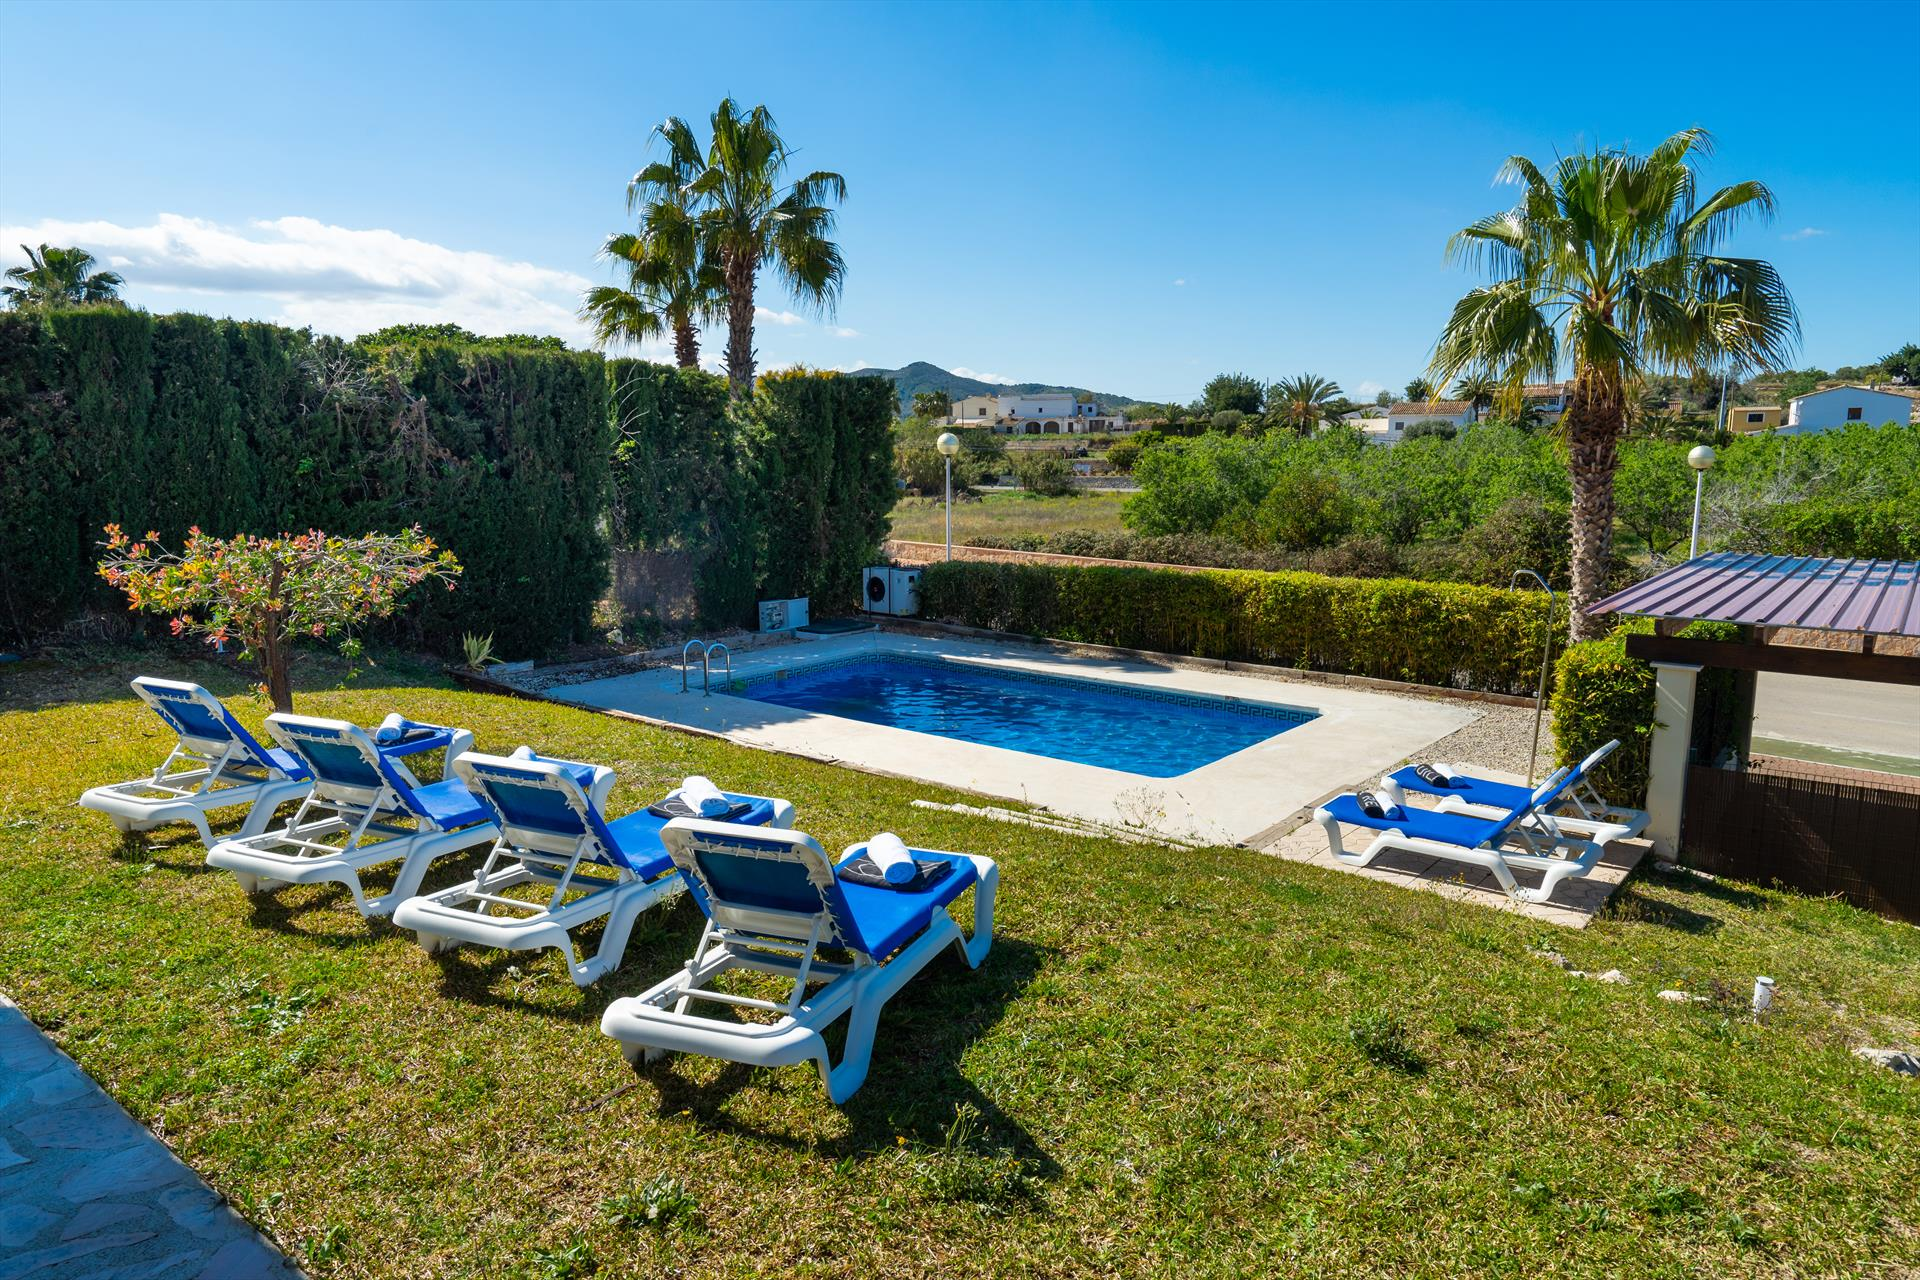 Calmita 4 pax, Modern and comfortable holiday home in Javea, on the Costa Blanca, Spain  with private pool for 4 persons.....